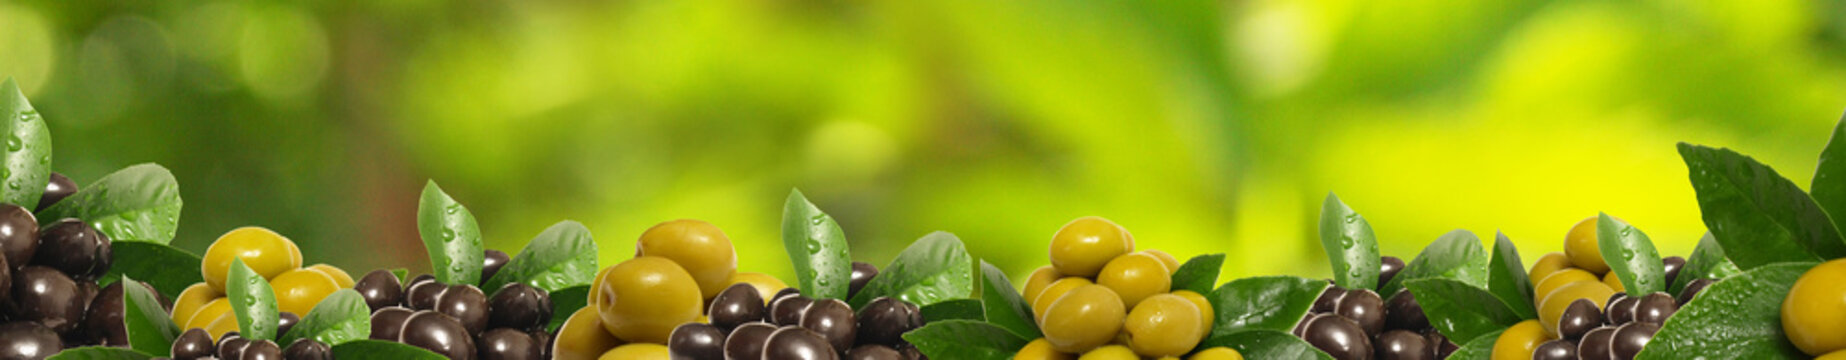 Olives from your favorite garden